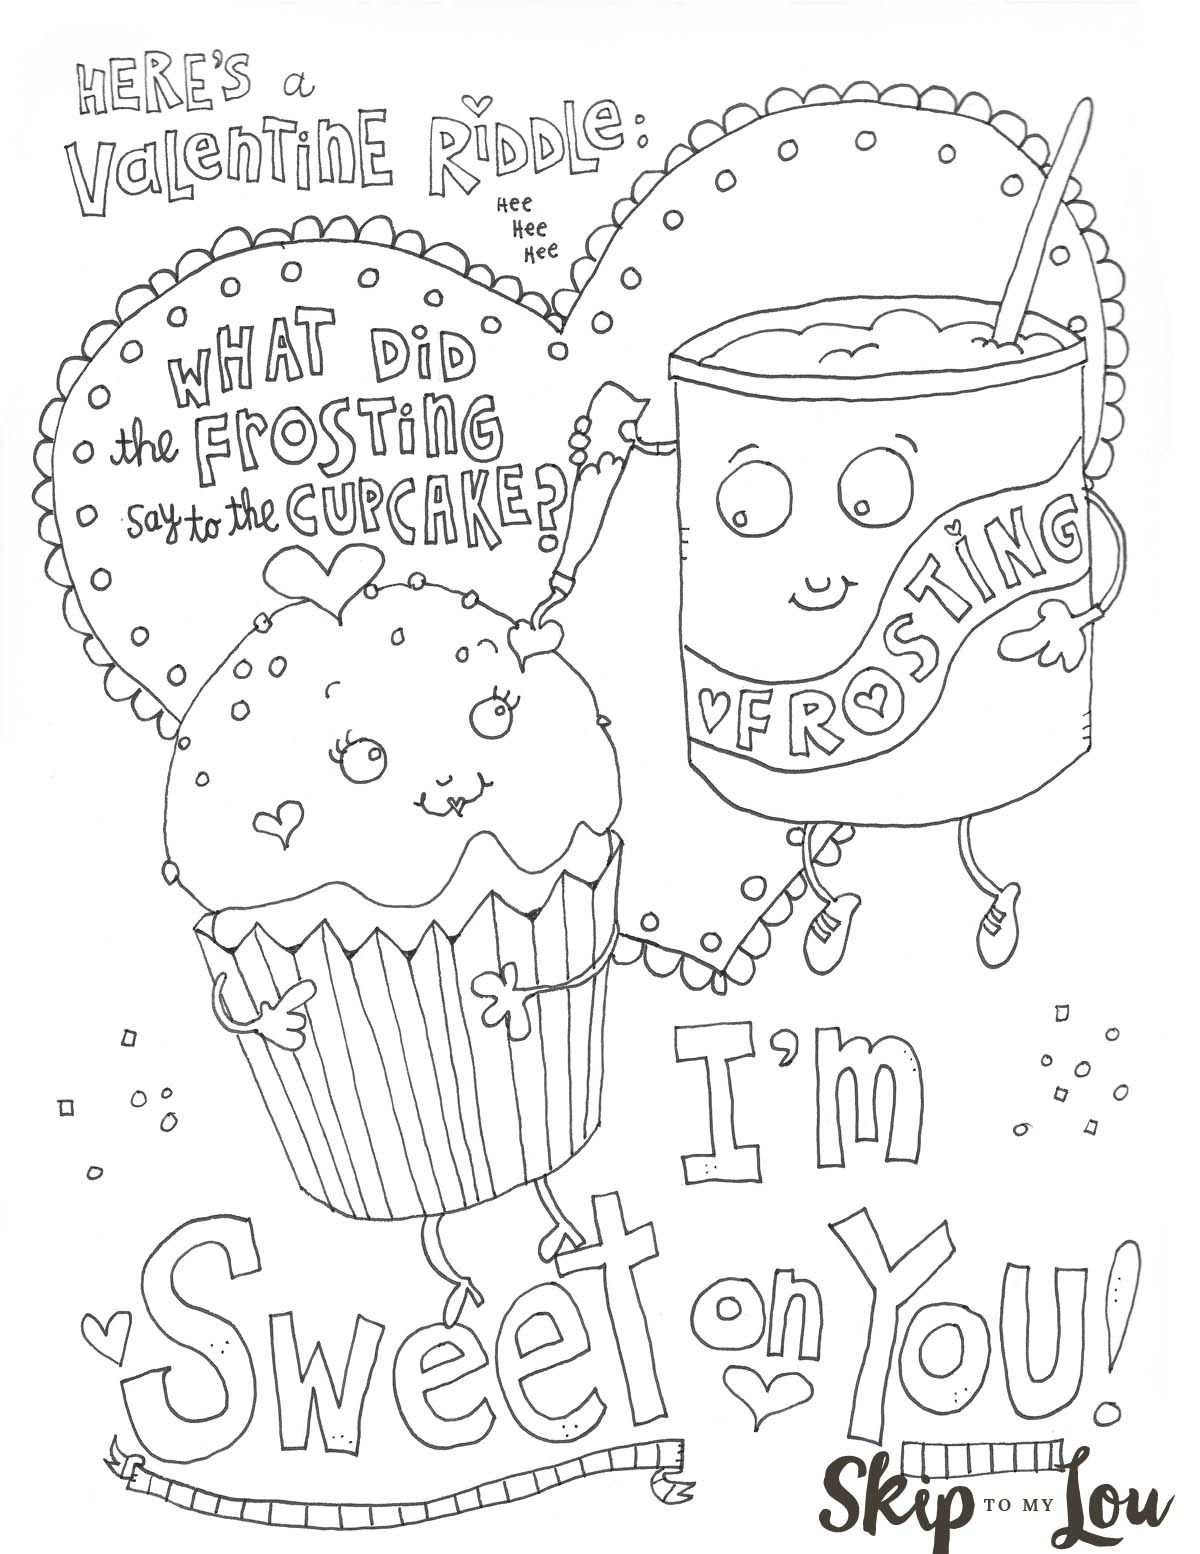 Free Printable Sweet on you Valentine Coloring Sheet. An